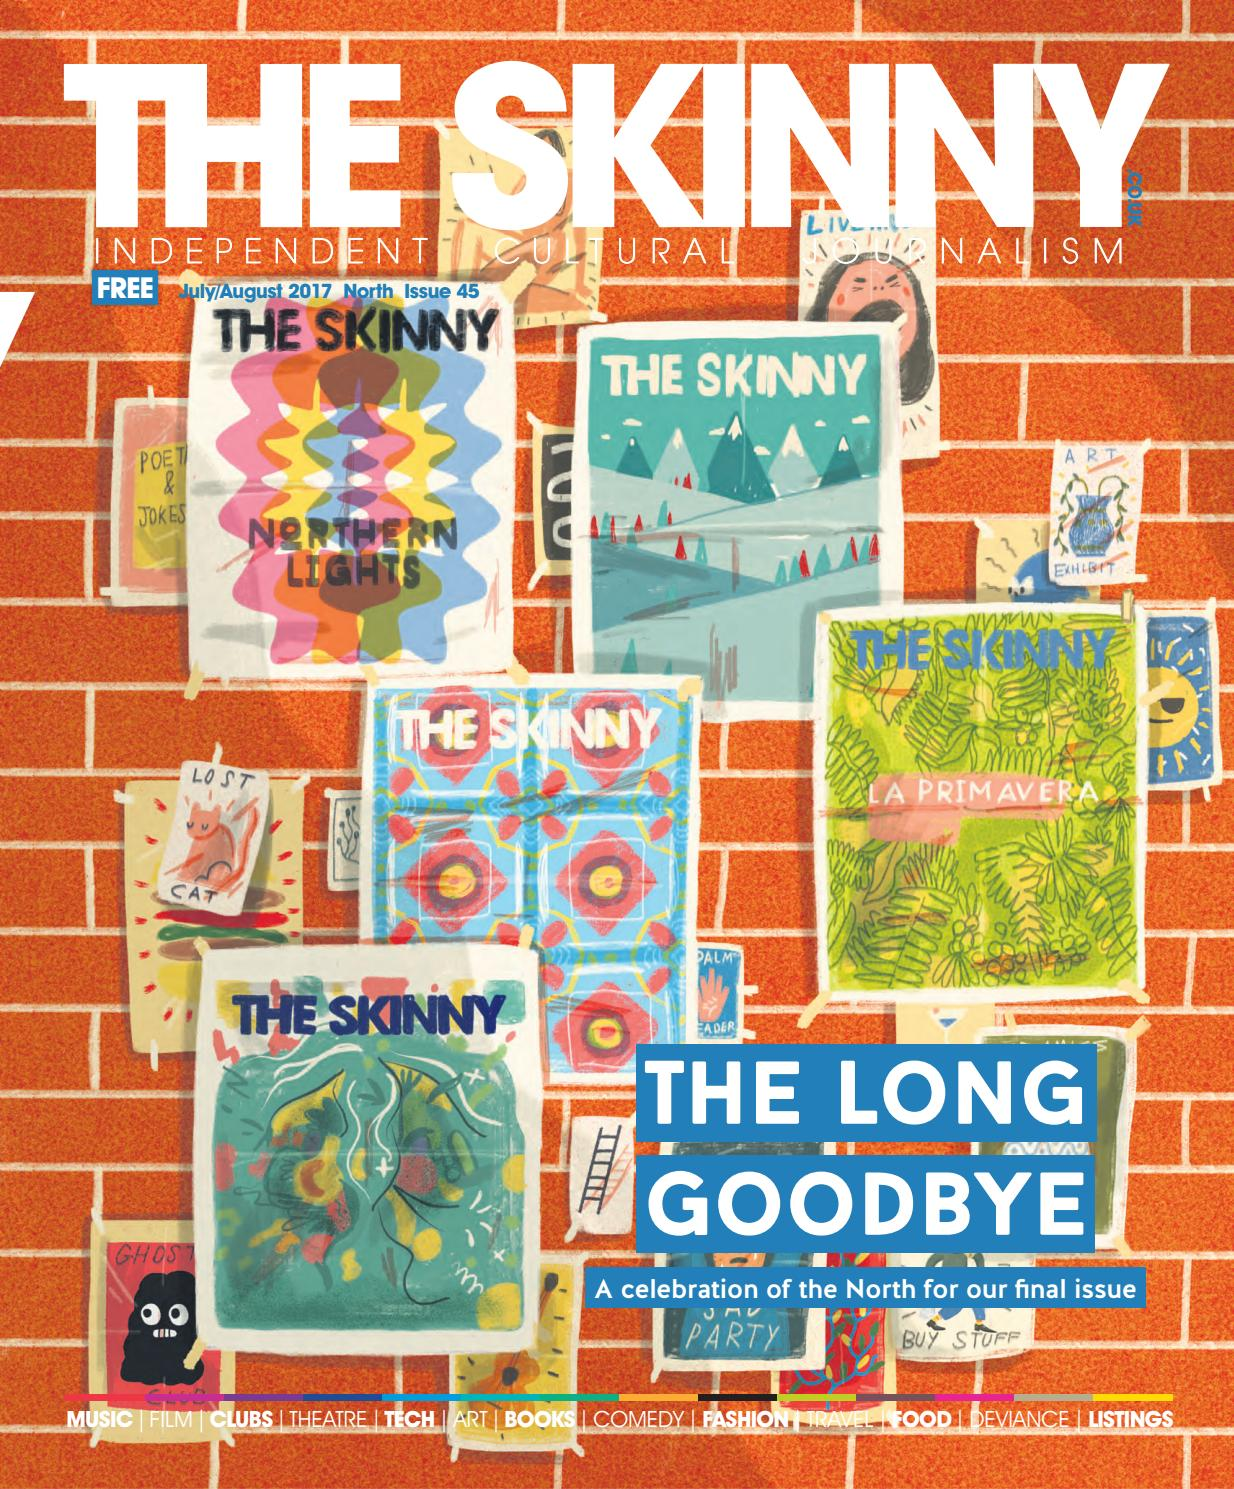 56202b9e5 The Skinny North July August 2017 by The Skinny - issuu